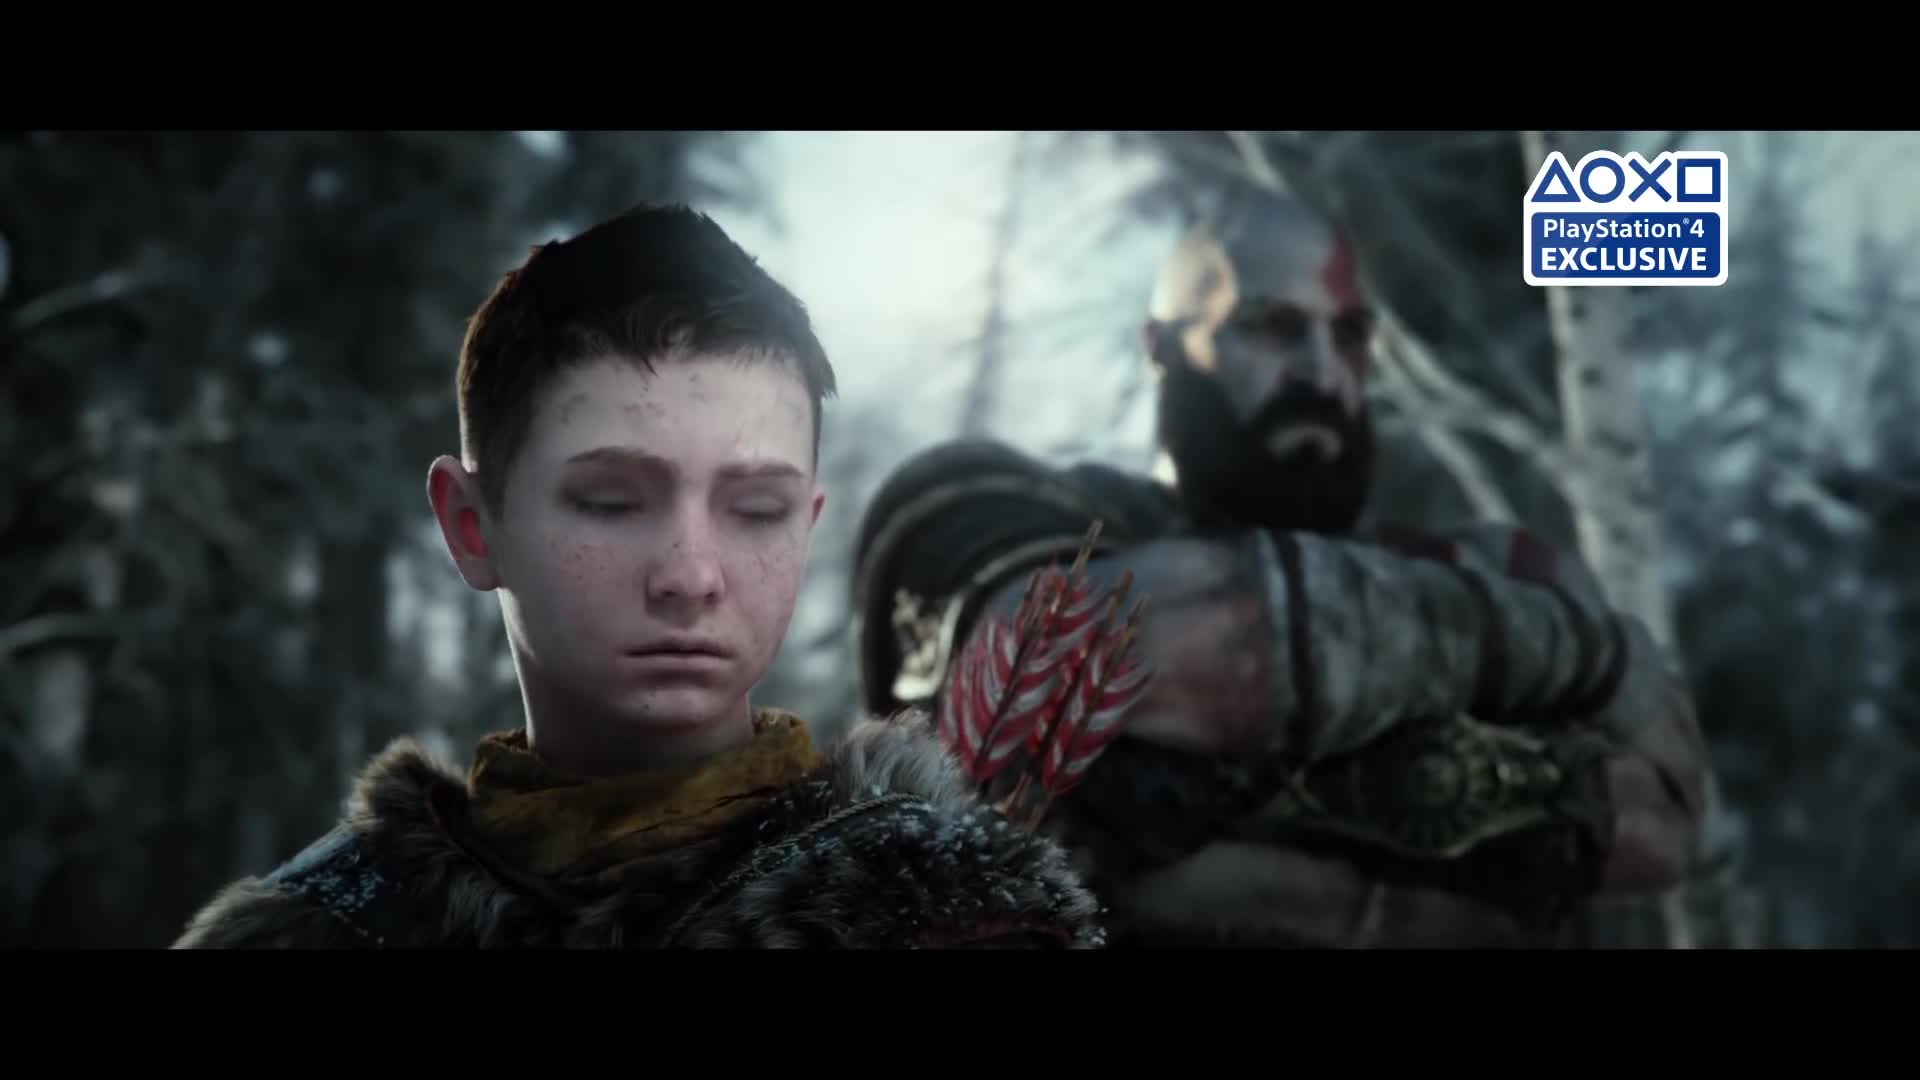 God of War - Arrow trailer